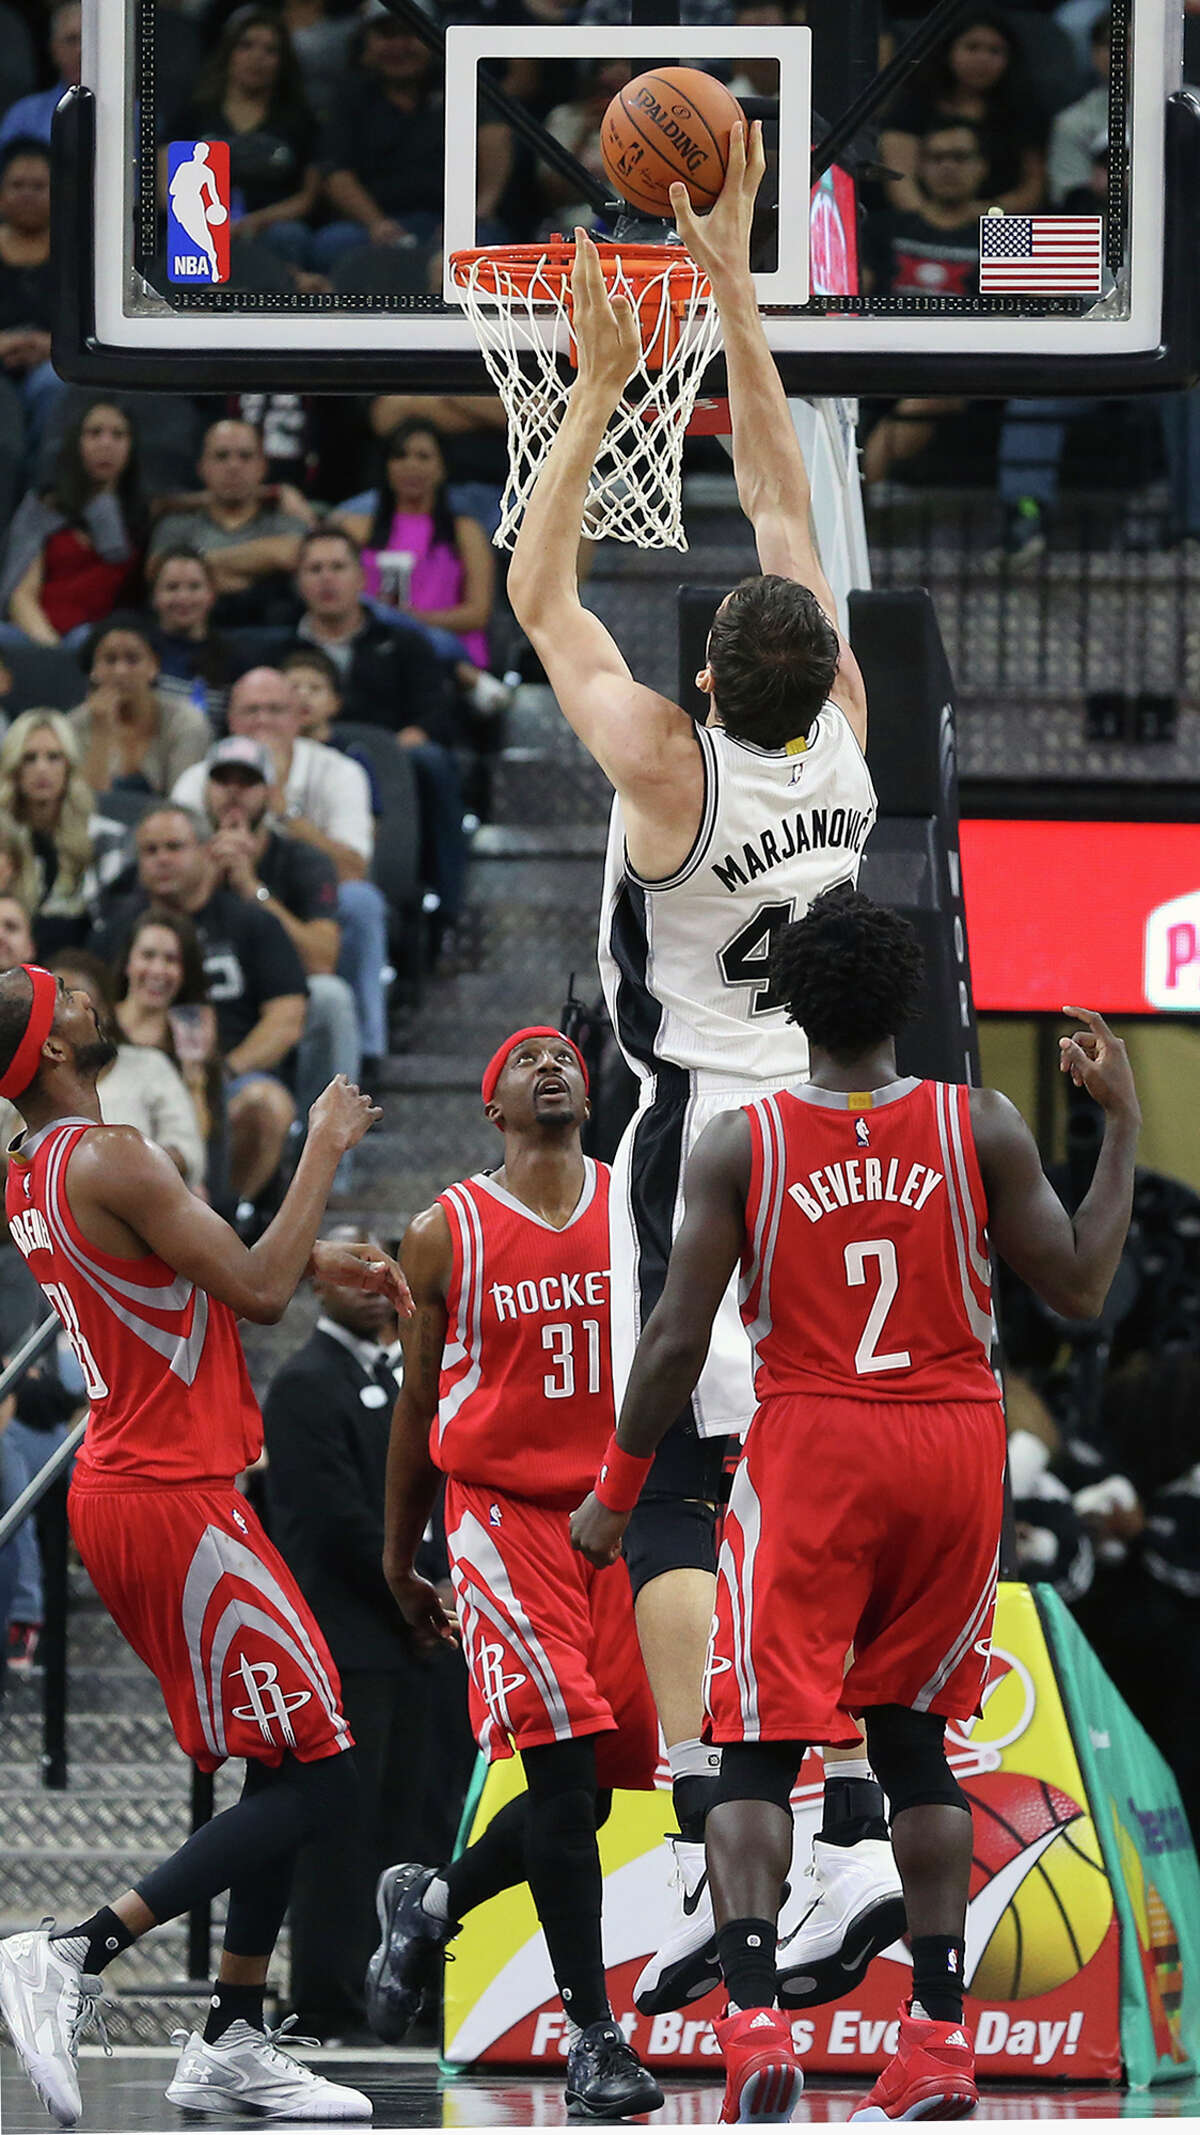 Boban Marjanovic skies above the defense to lay in a bucket as the Spurs host the Rockets at the AT&T Center on October 23, 2015.